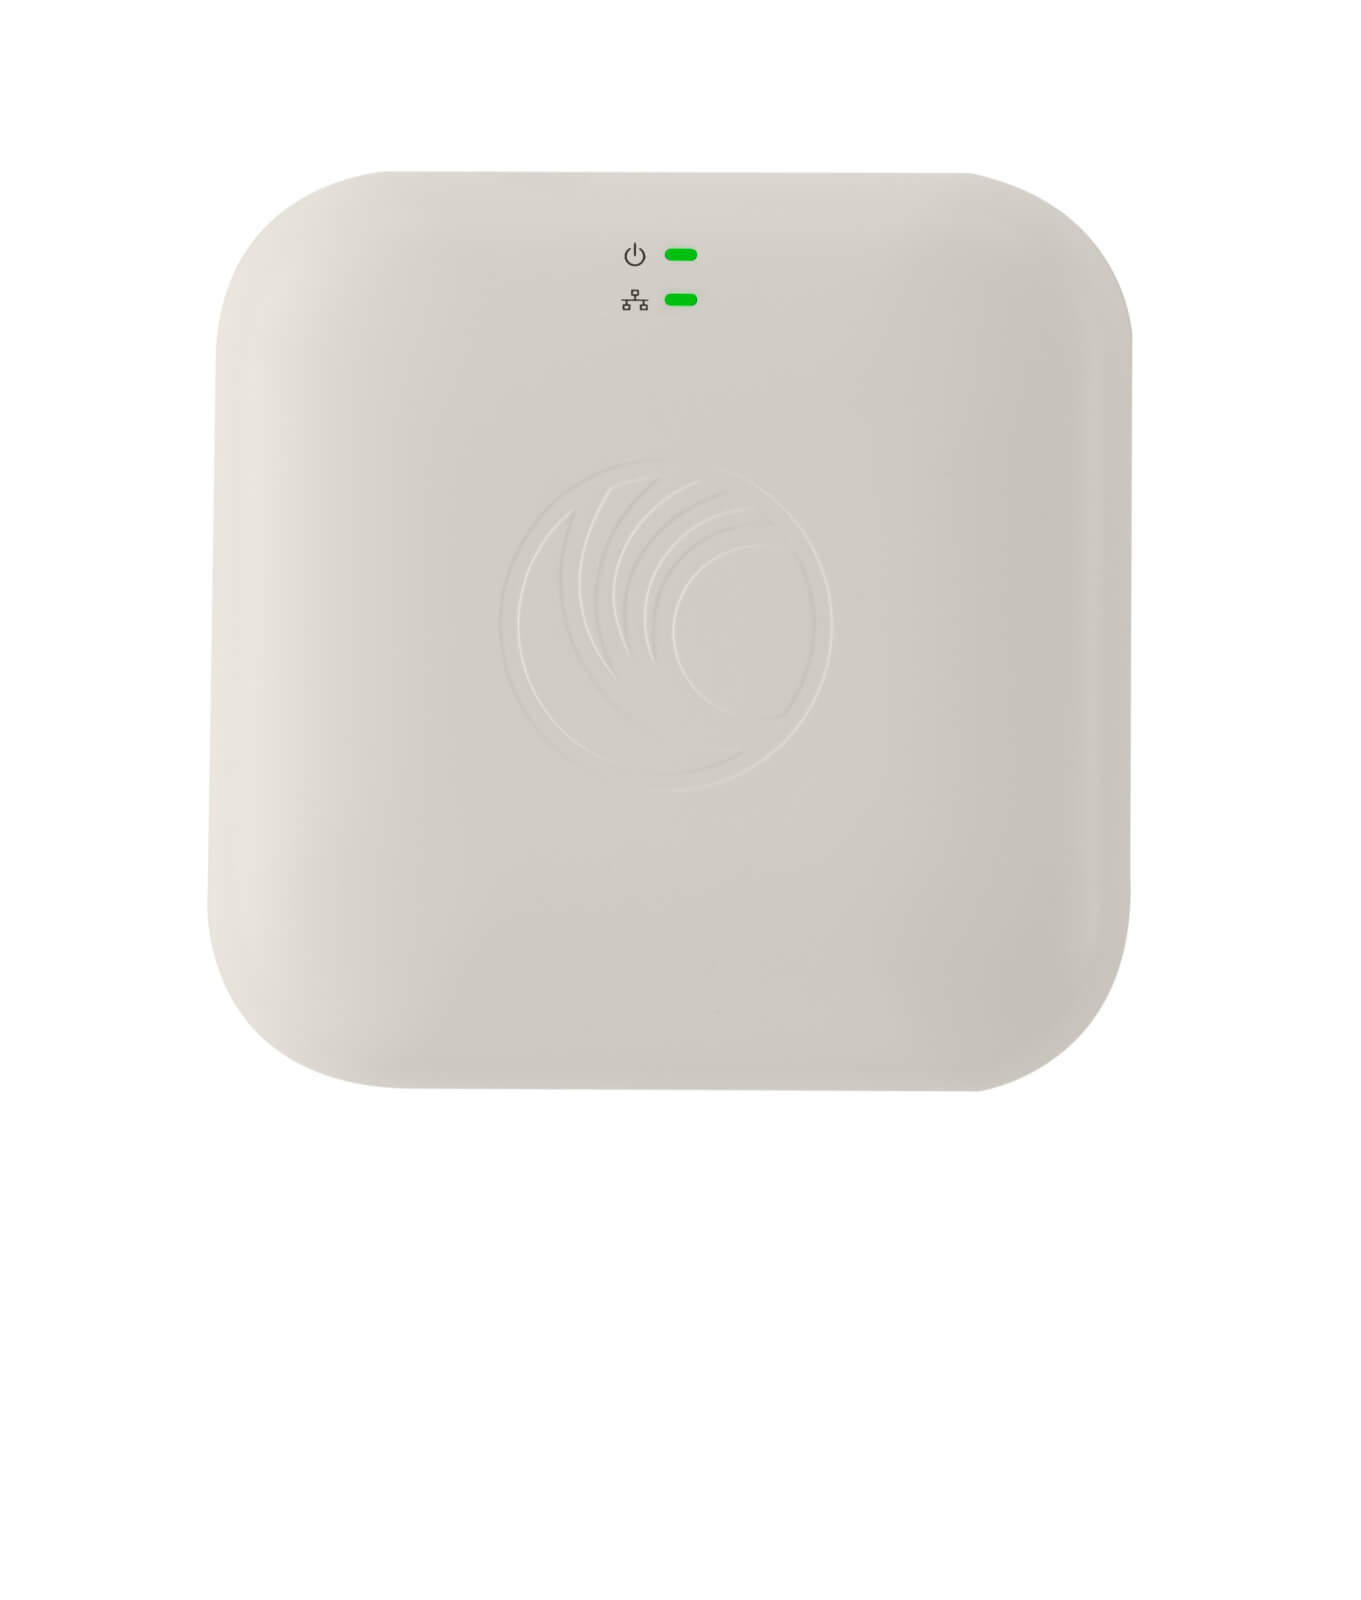 Original Image: Cambium Networks – cnPilot™ E400 (ROW with US country cord) 802.11ac dual band AP with PoE Injector